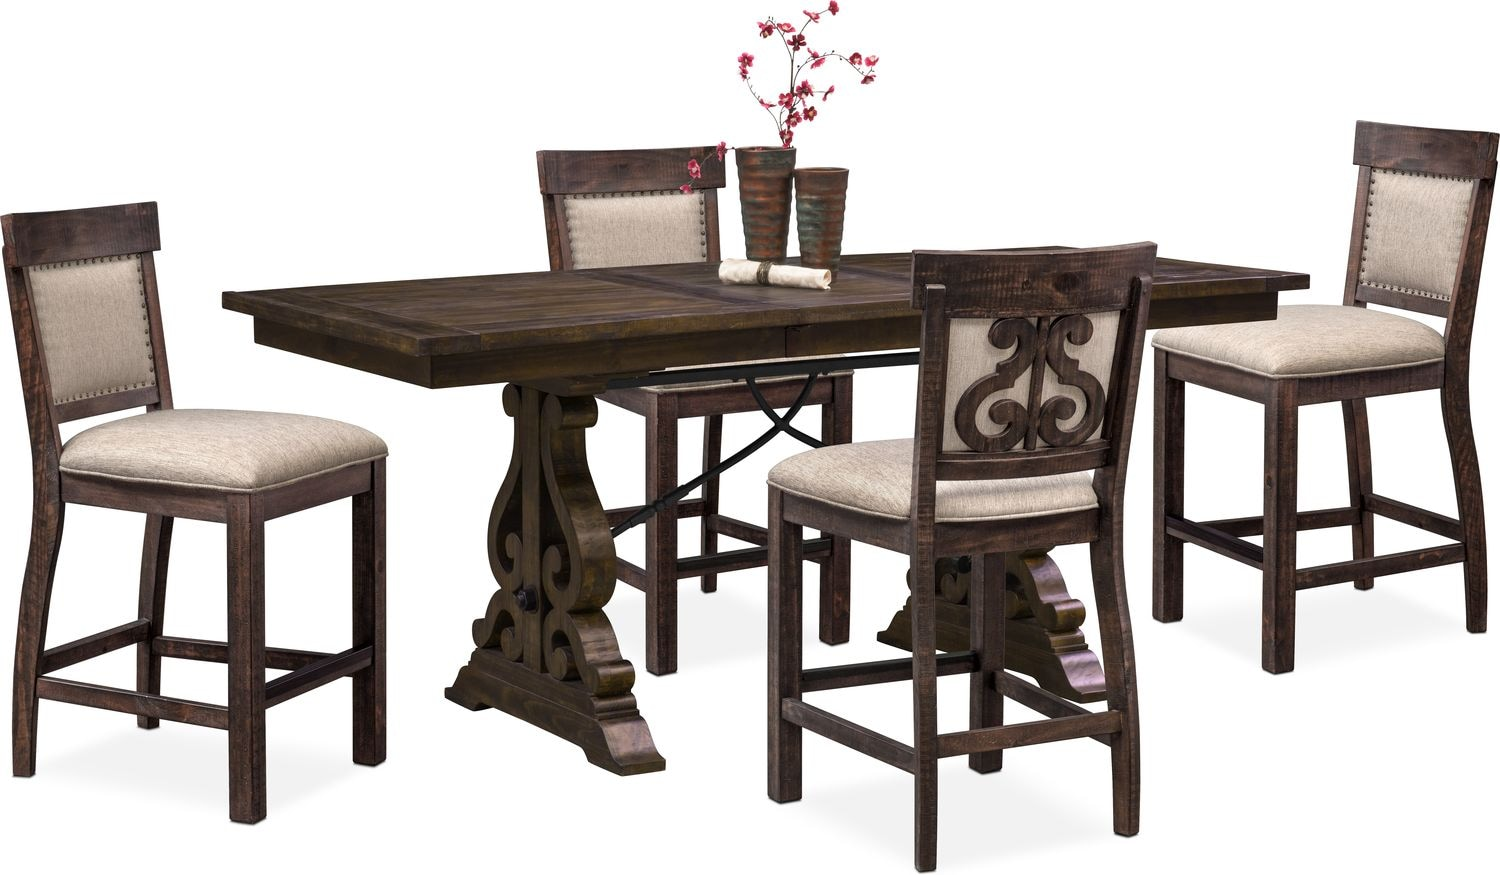 Dining Table Stools Dining Room Ideas